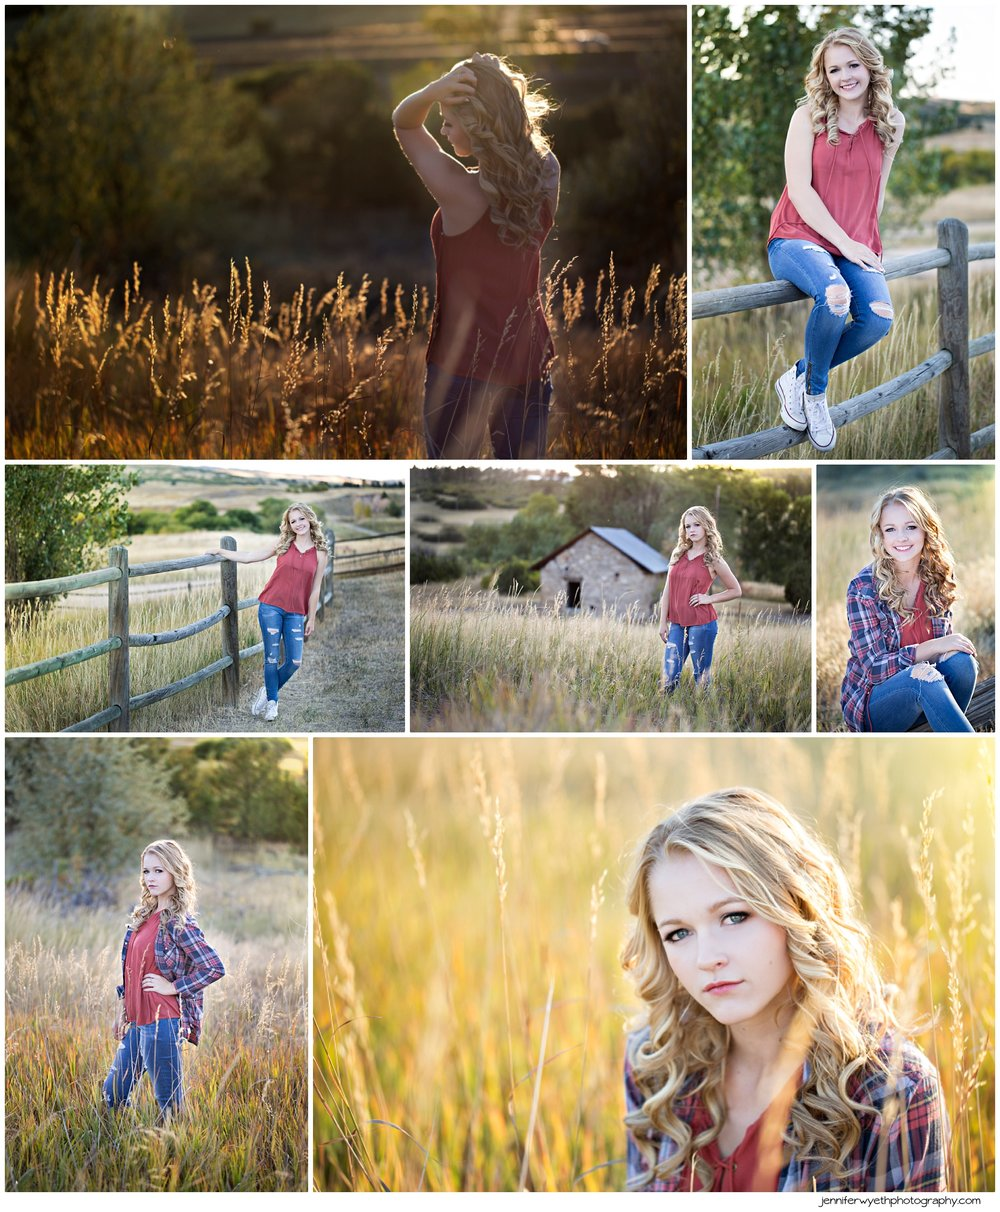 Jennifer-Wyeth-photography-senior-pictures-colorado-springs-photographer_0188.jpg